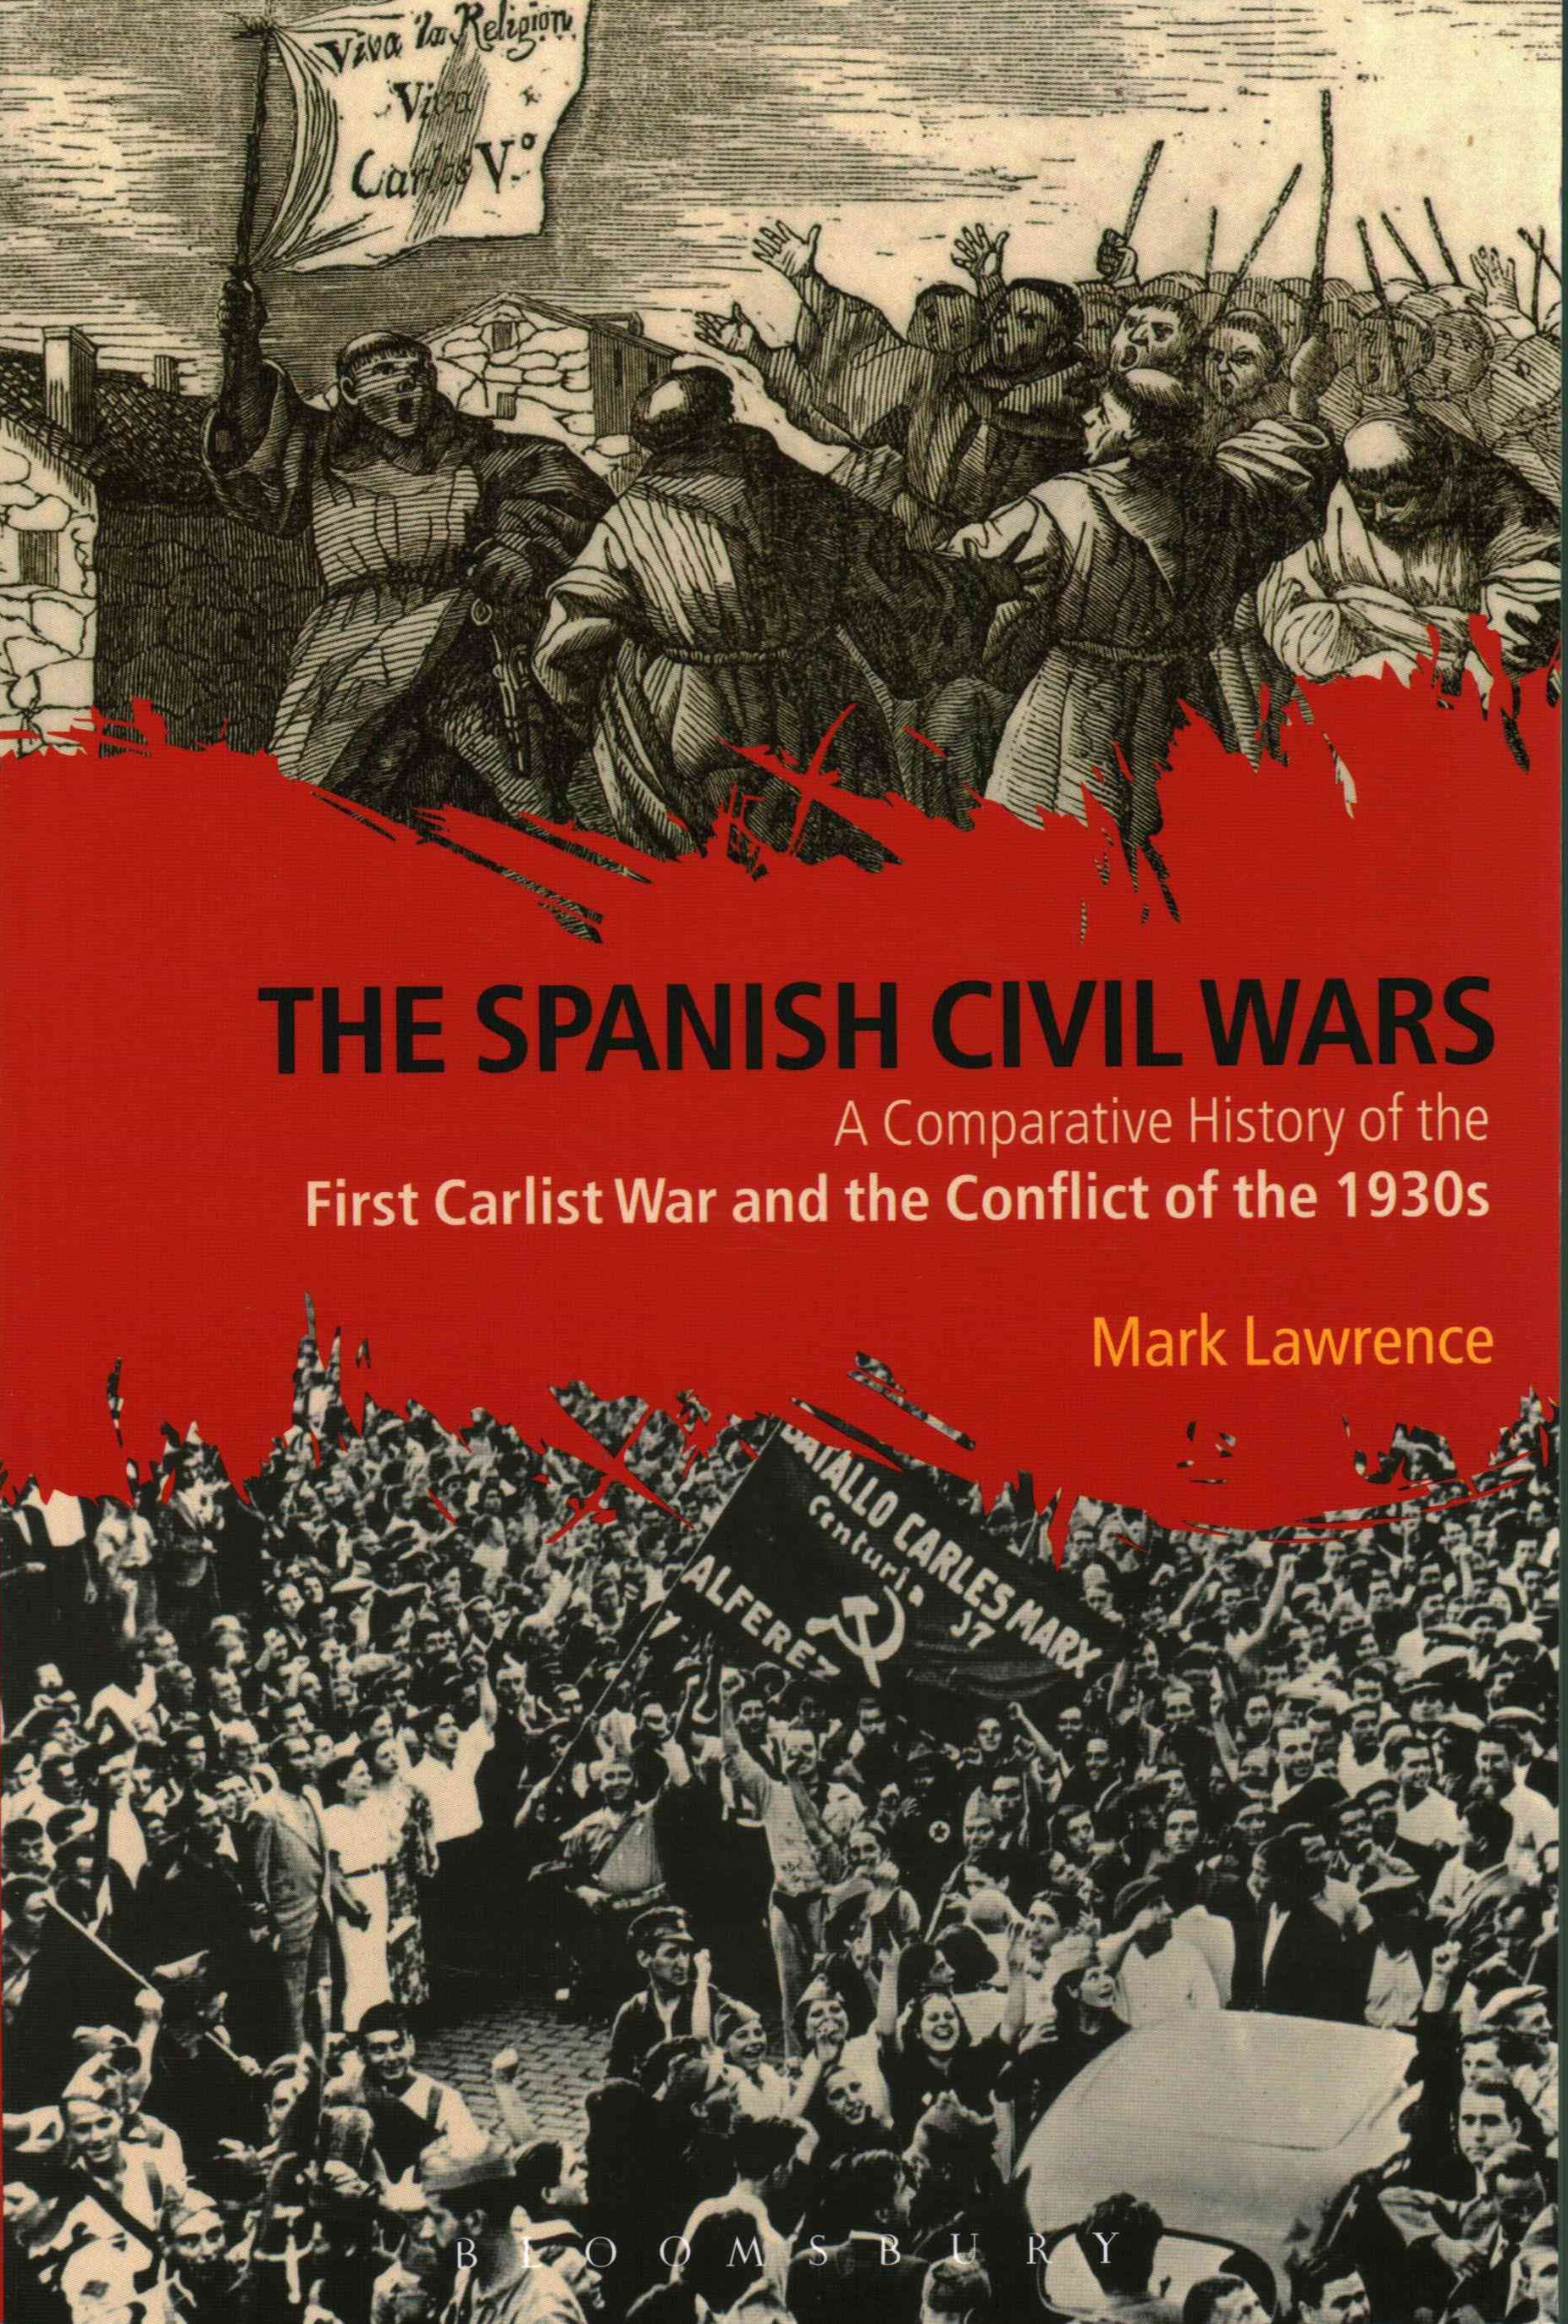 The Spanish Civil Wars